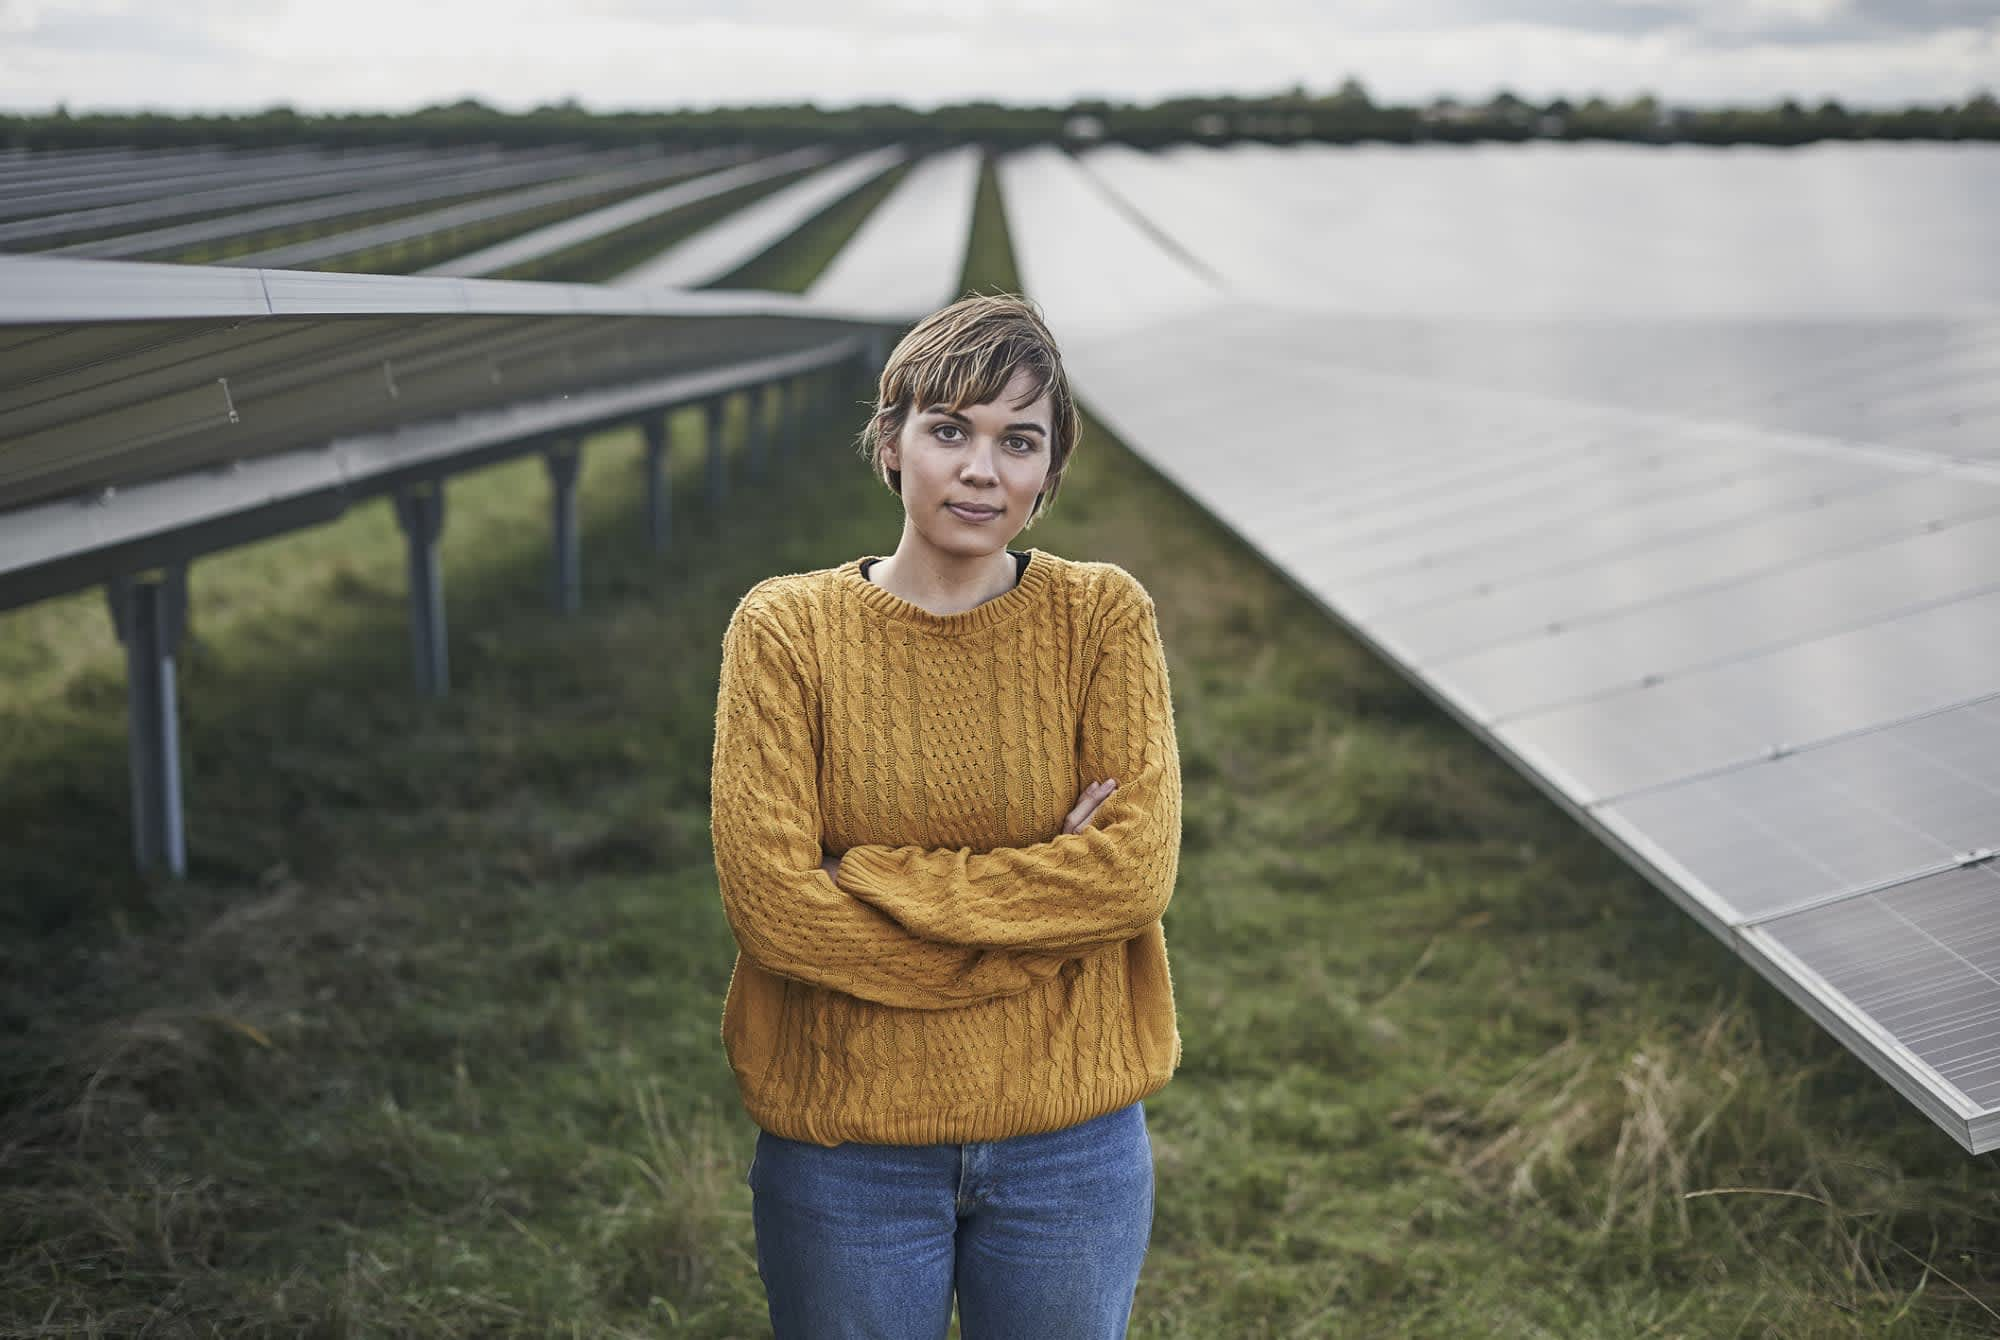 young female farmer stands in field of solar panels